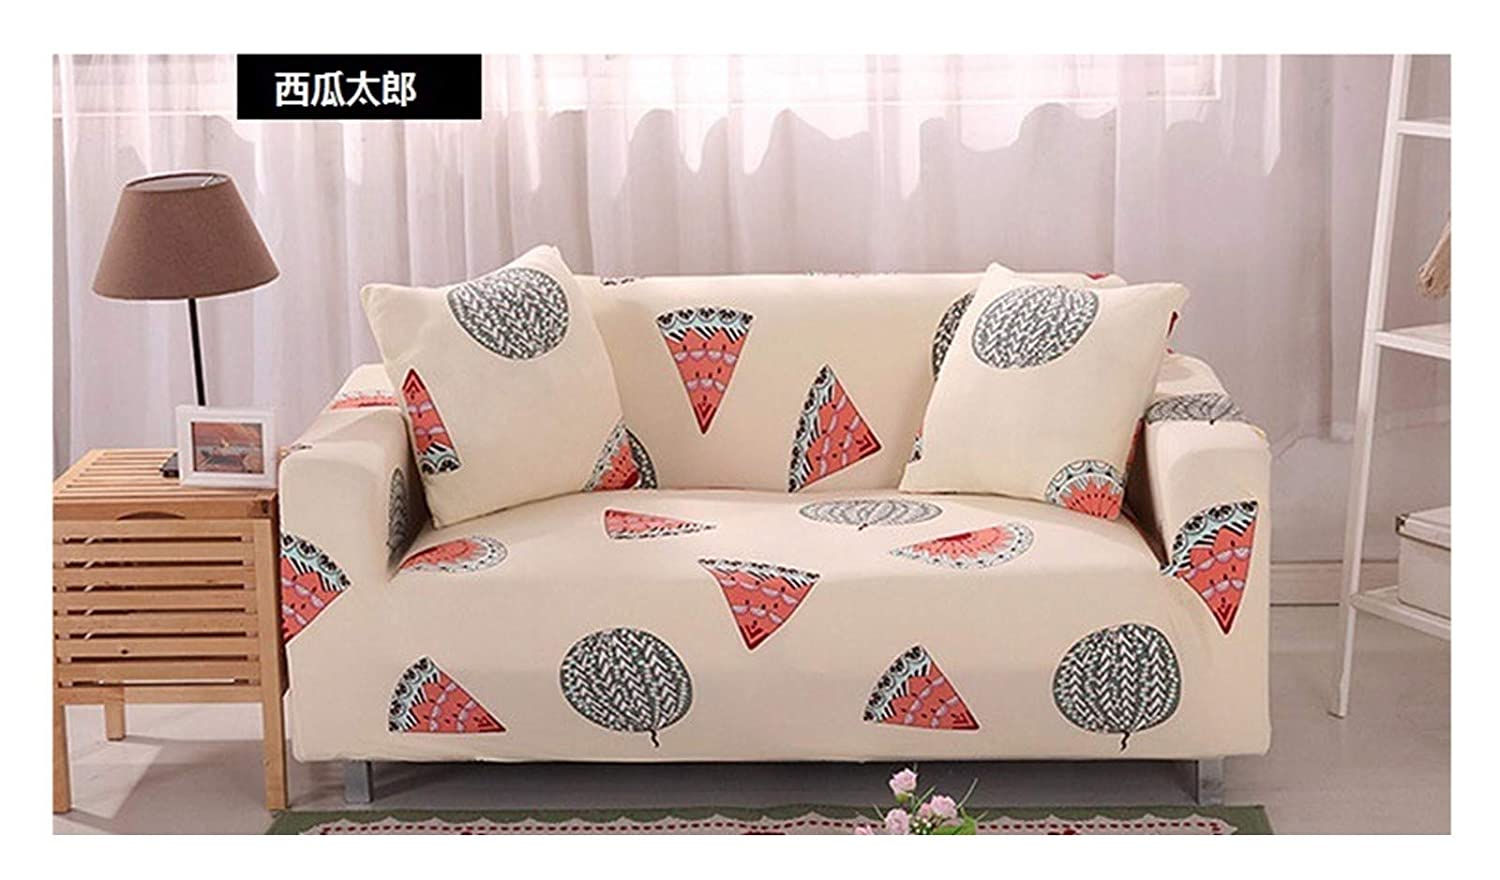 4seat VGUYFUYH Watermelon Pattern Skid Proof Sofa Cover Polyester Full Package Elasticity Home Versatile Sofa Cover Simple Fashion One Piece Durable Dust Proof Pet Dog Predective Cover,4Seat